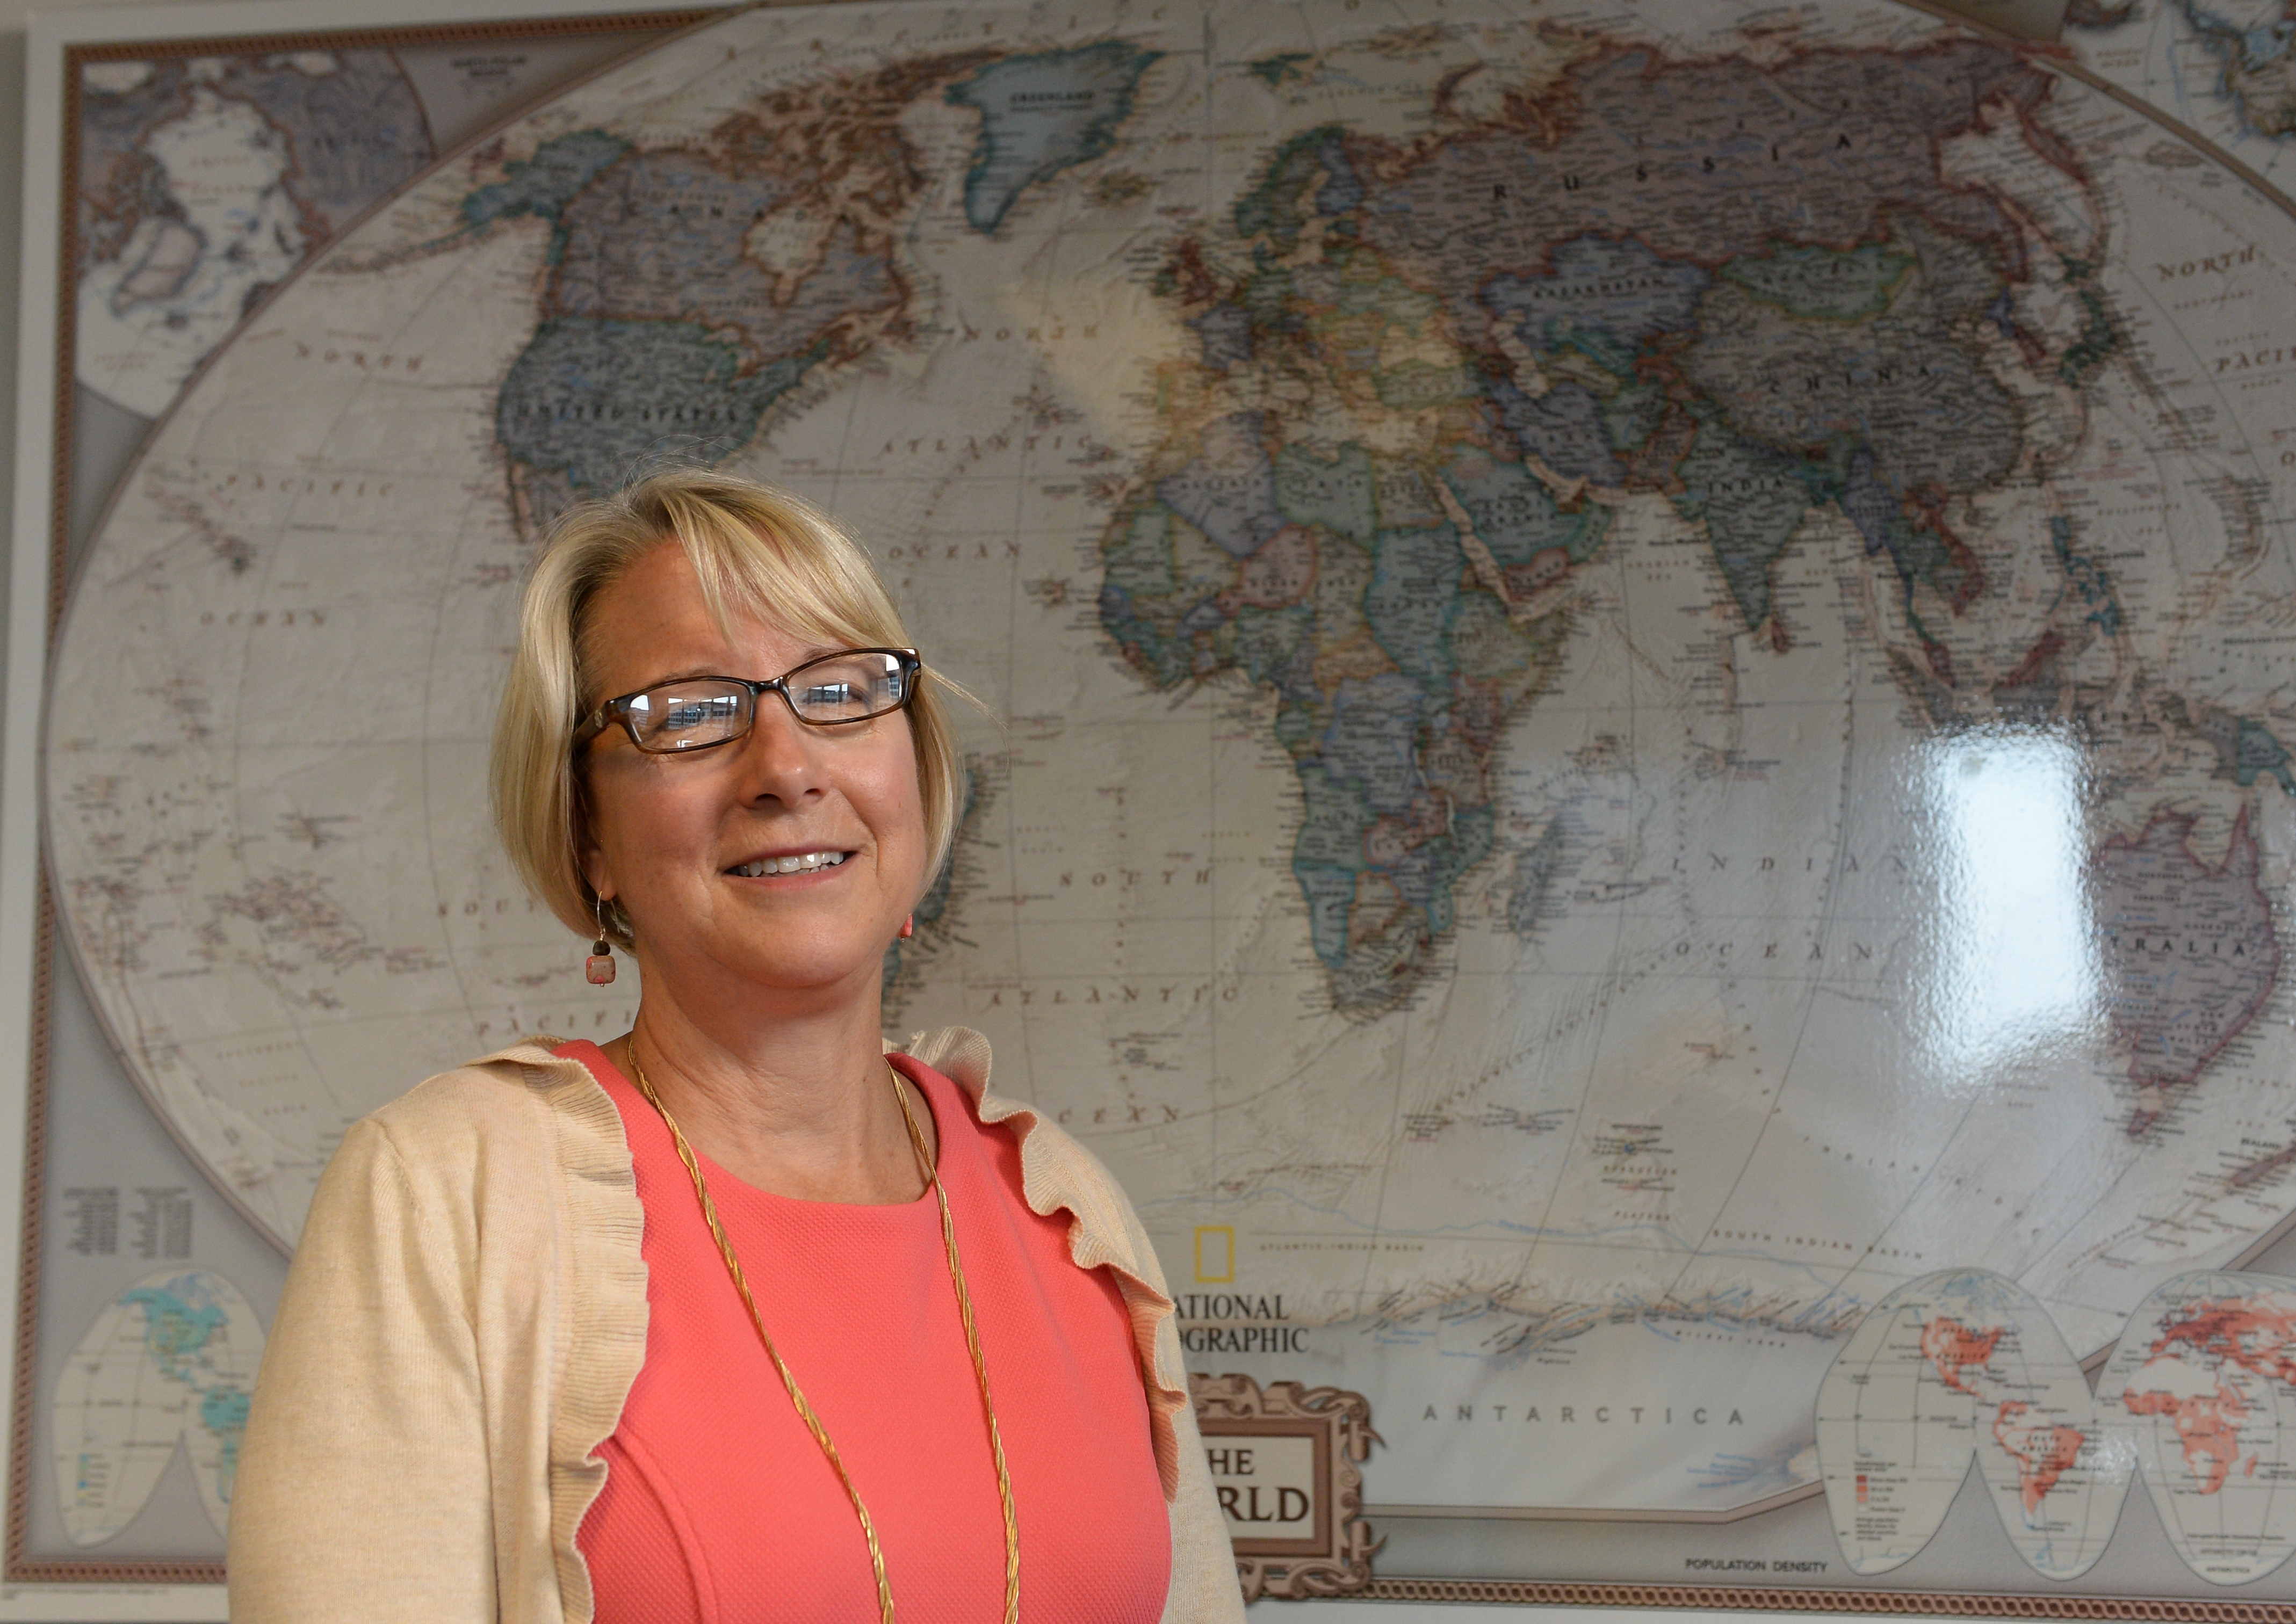 Peace Corps Director Carrie Hessler-Radelet speaks about the difficult decision to pull volunteers from West Africa due to the Ebola outbreak and when they will be able to return to service on Capital Download with Susan Page.